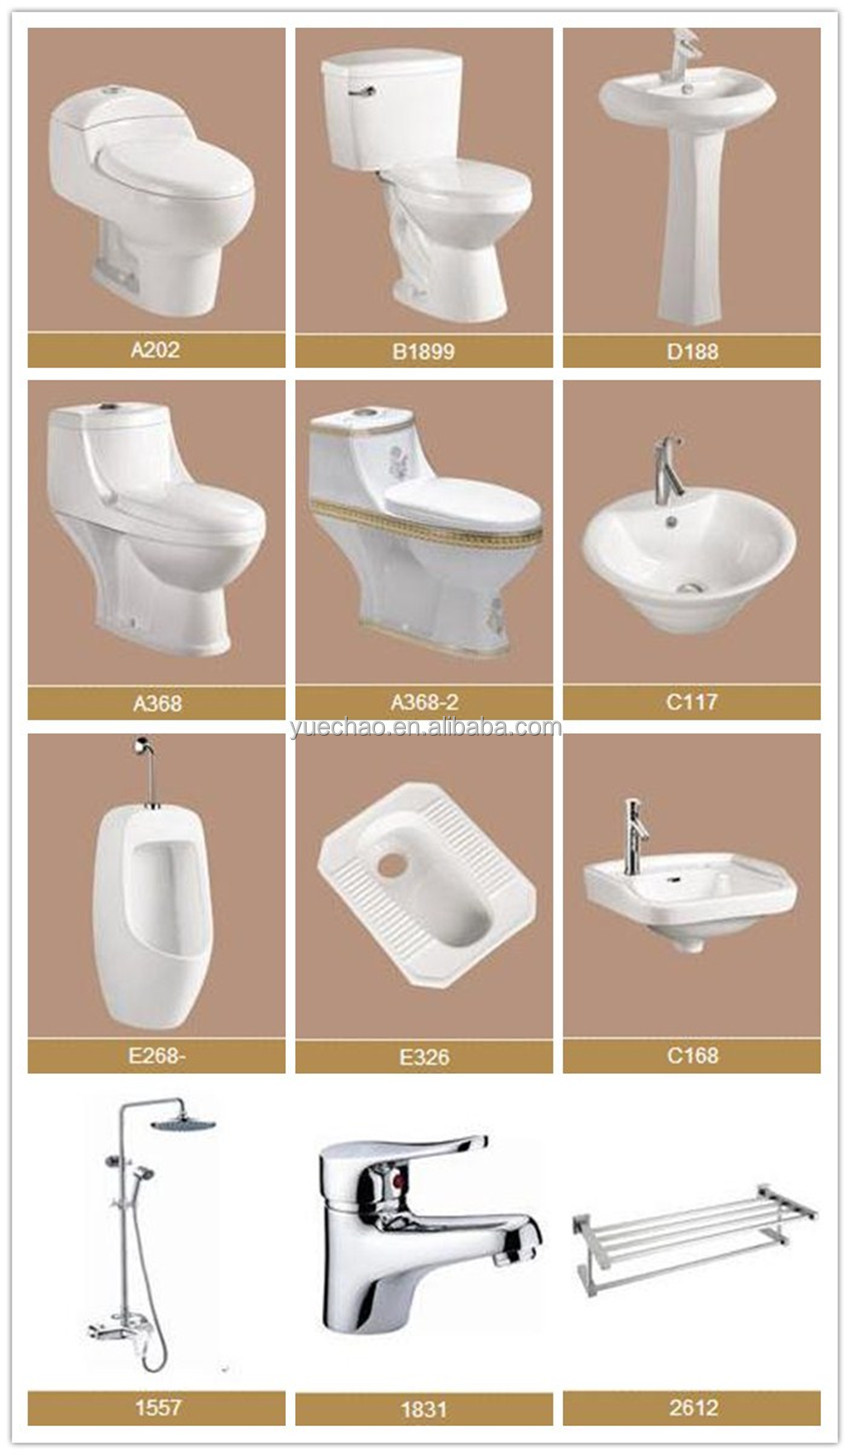 sanitary ware ceramic squatting W.C pan